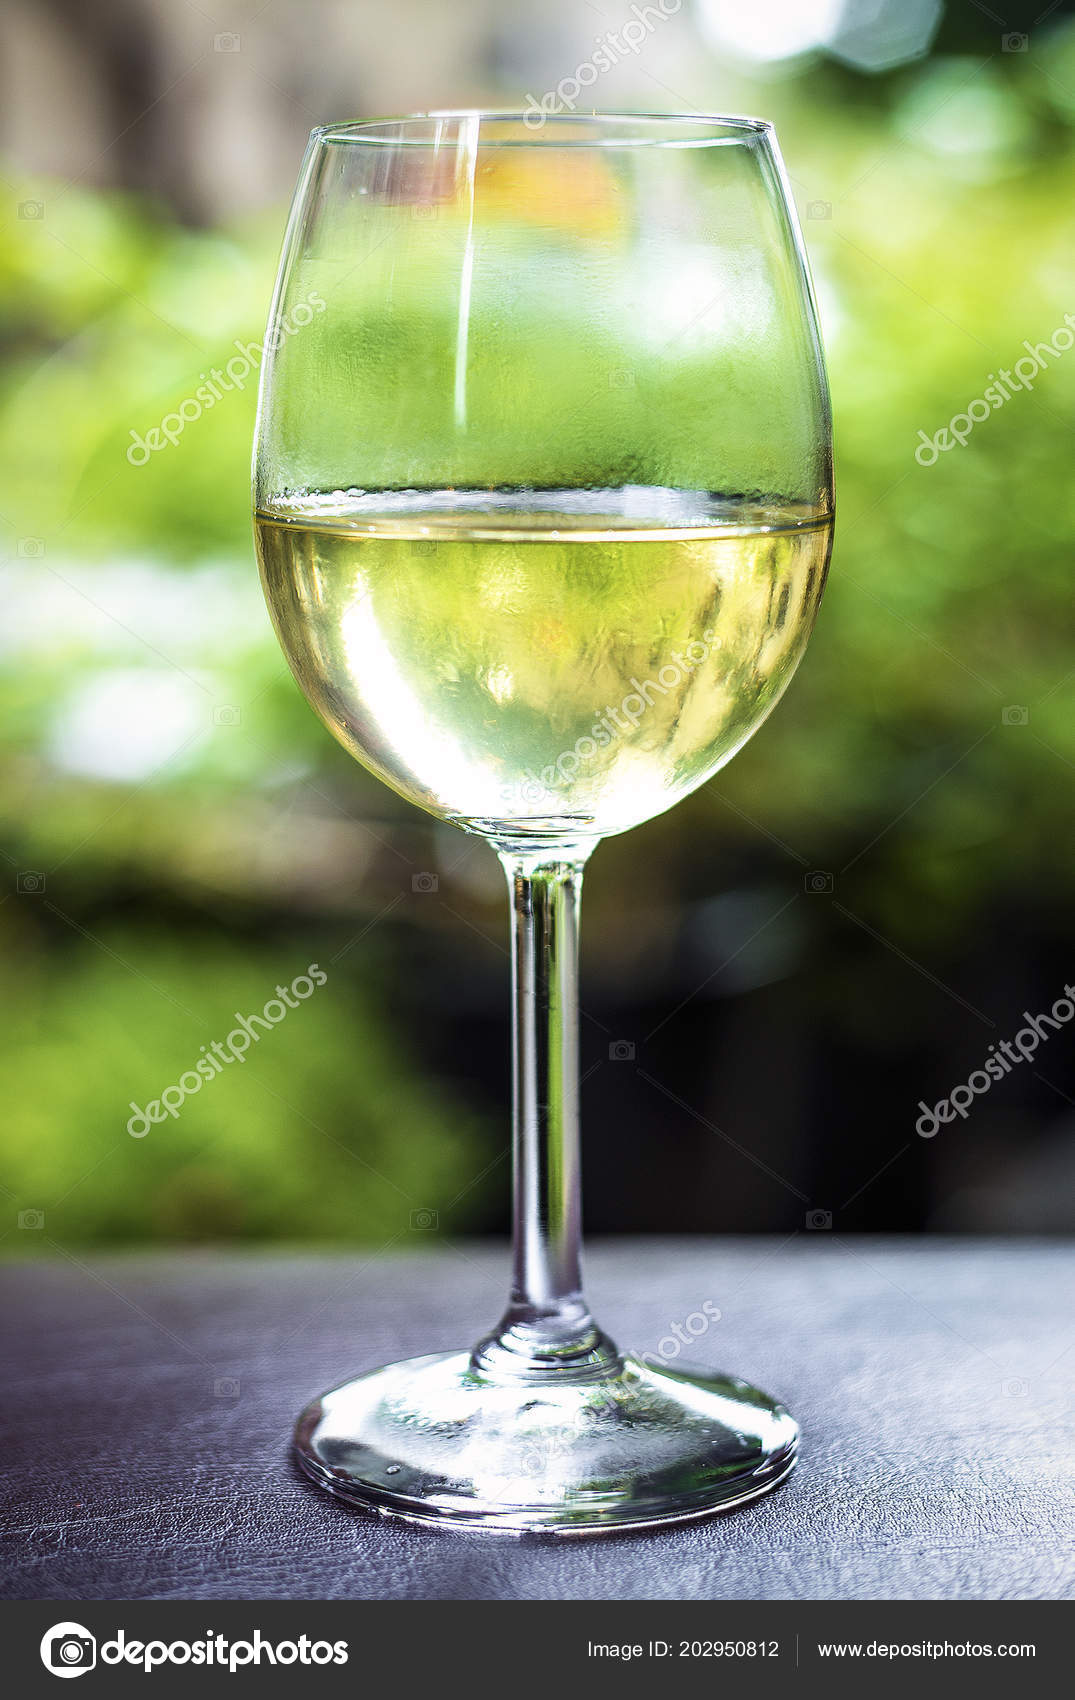 Chardonnay Wine Glass Glass Organic White Chardonnay Wine Garden France Stock Photo